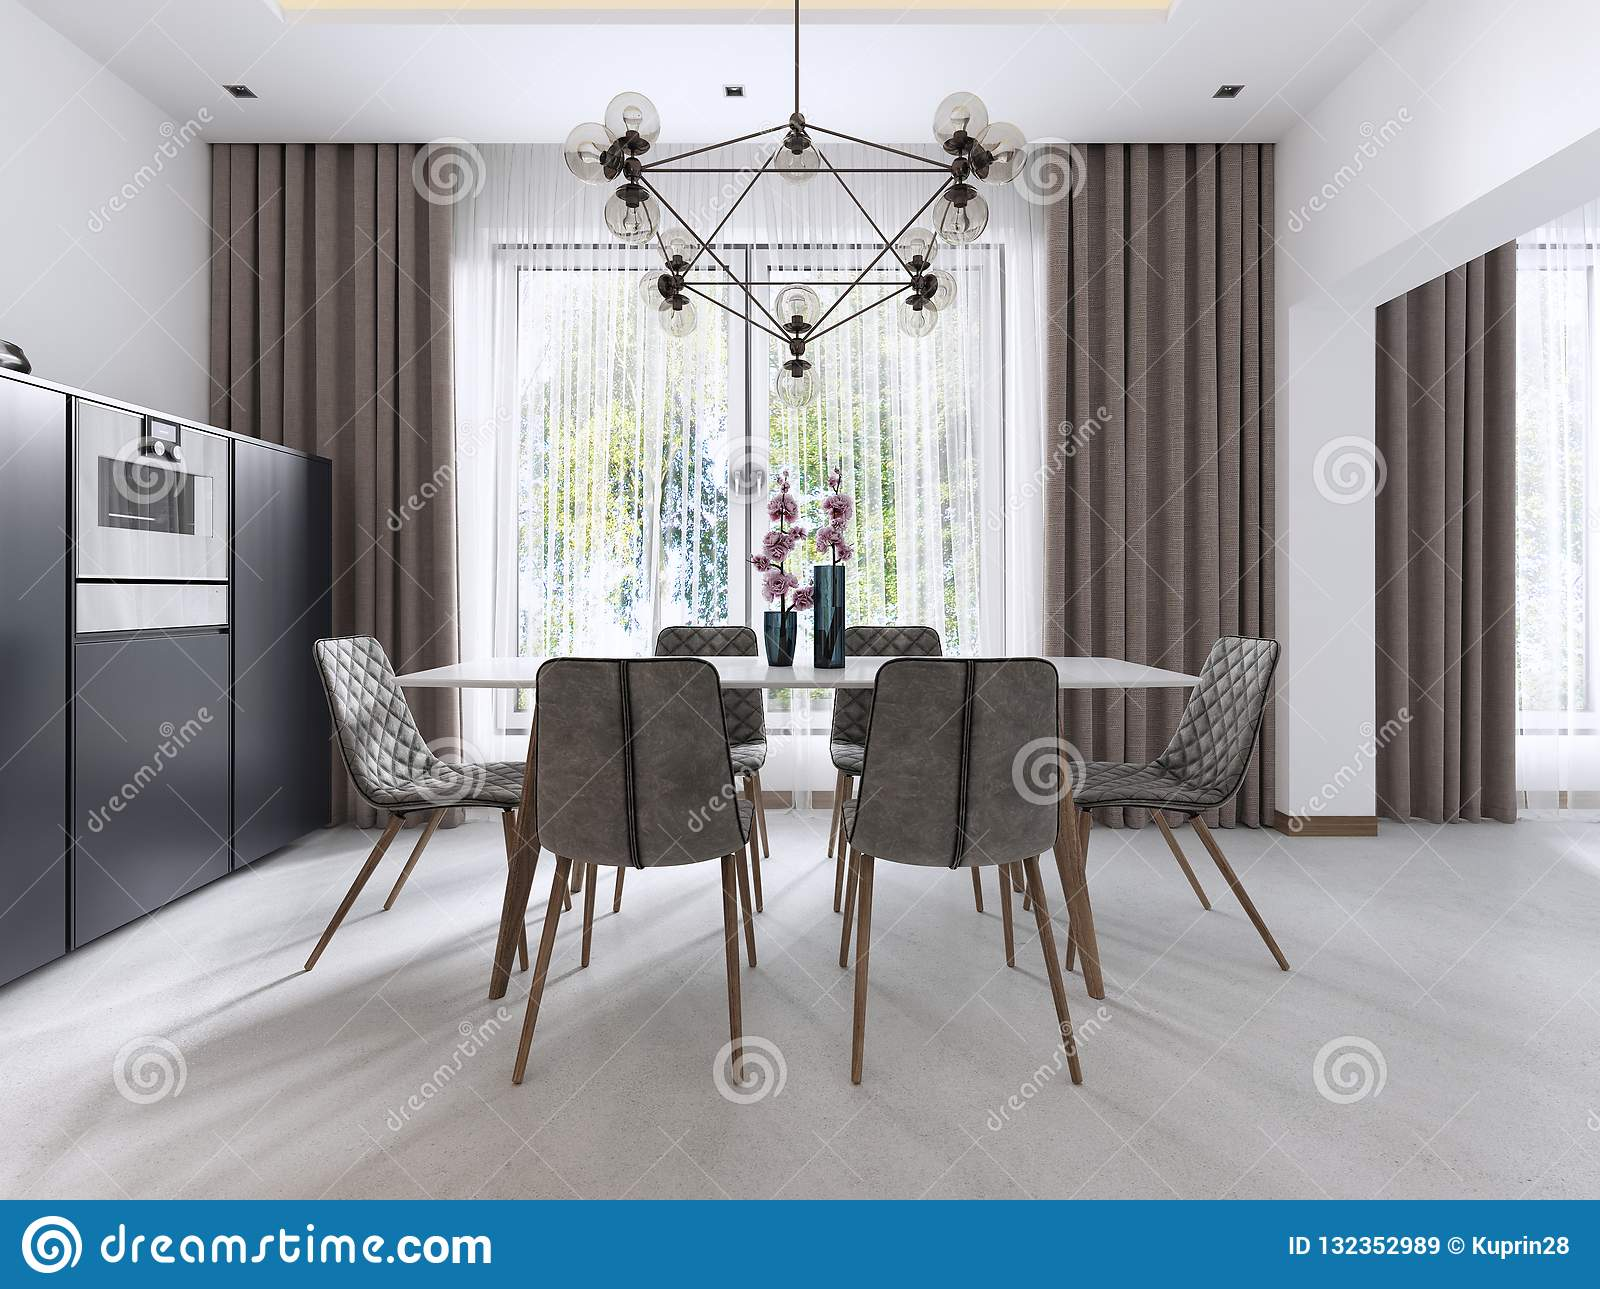 Dining Room In Contemporary Style With Modern Chairs And A